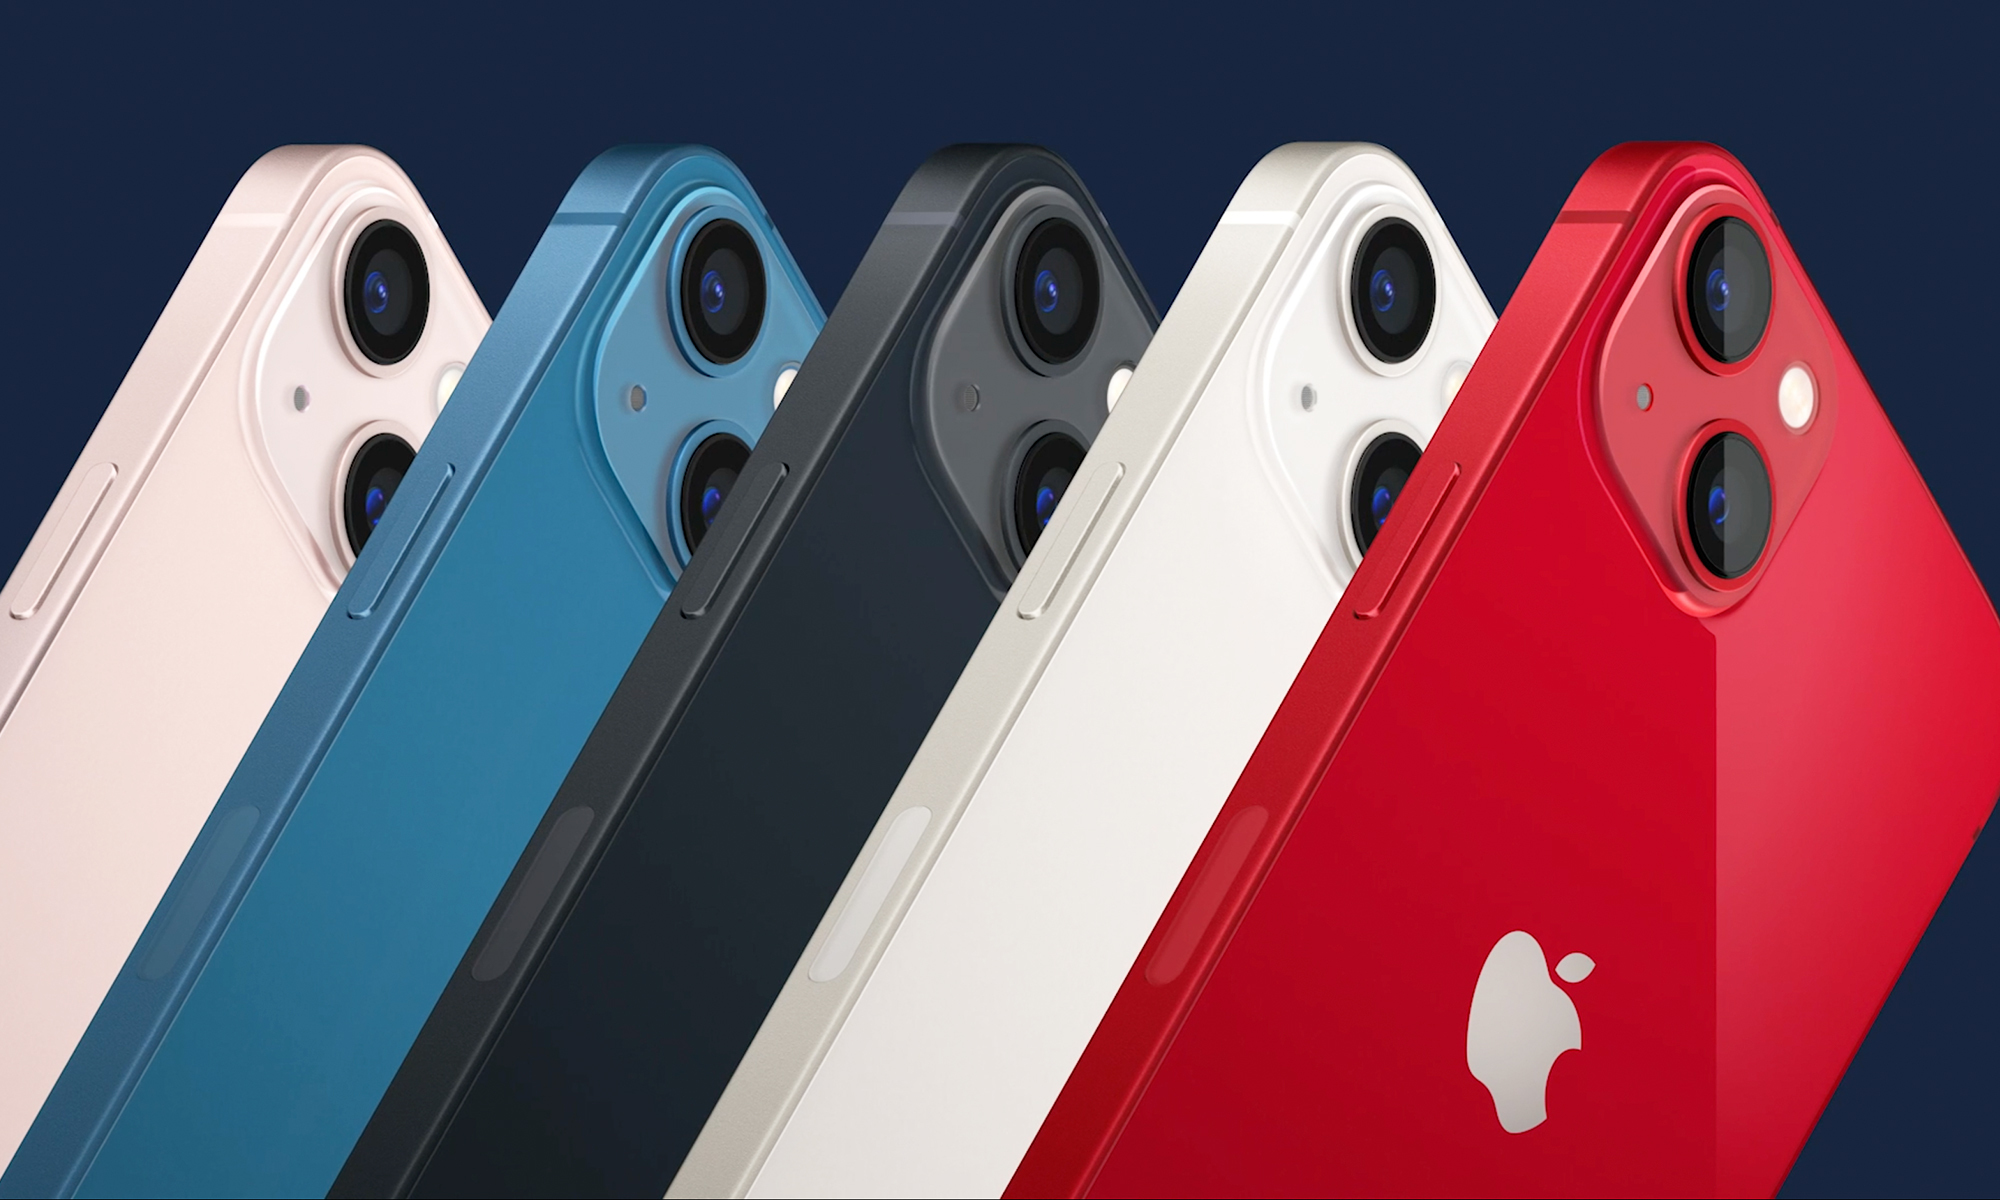 Apple's iPhone 13 mini gets camera technology from the 12 Pro Max